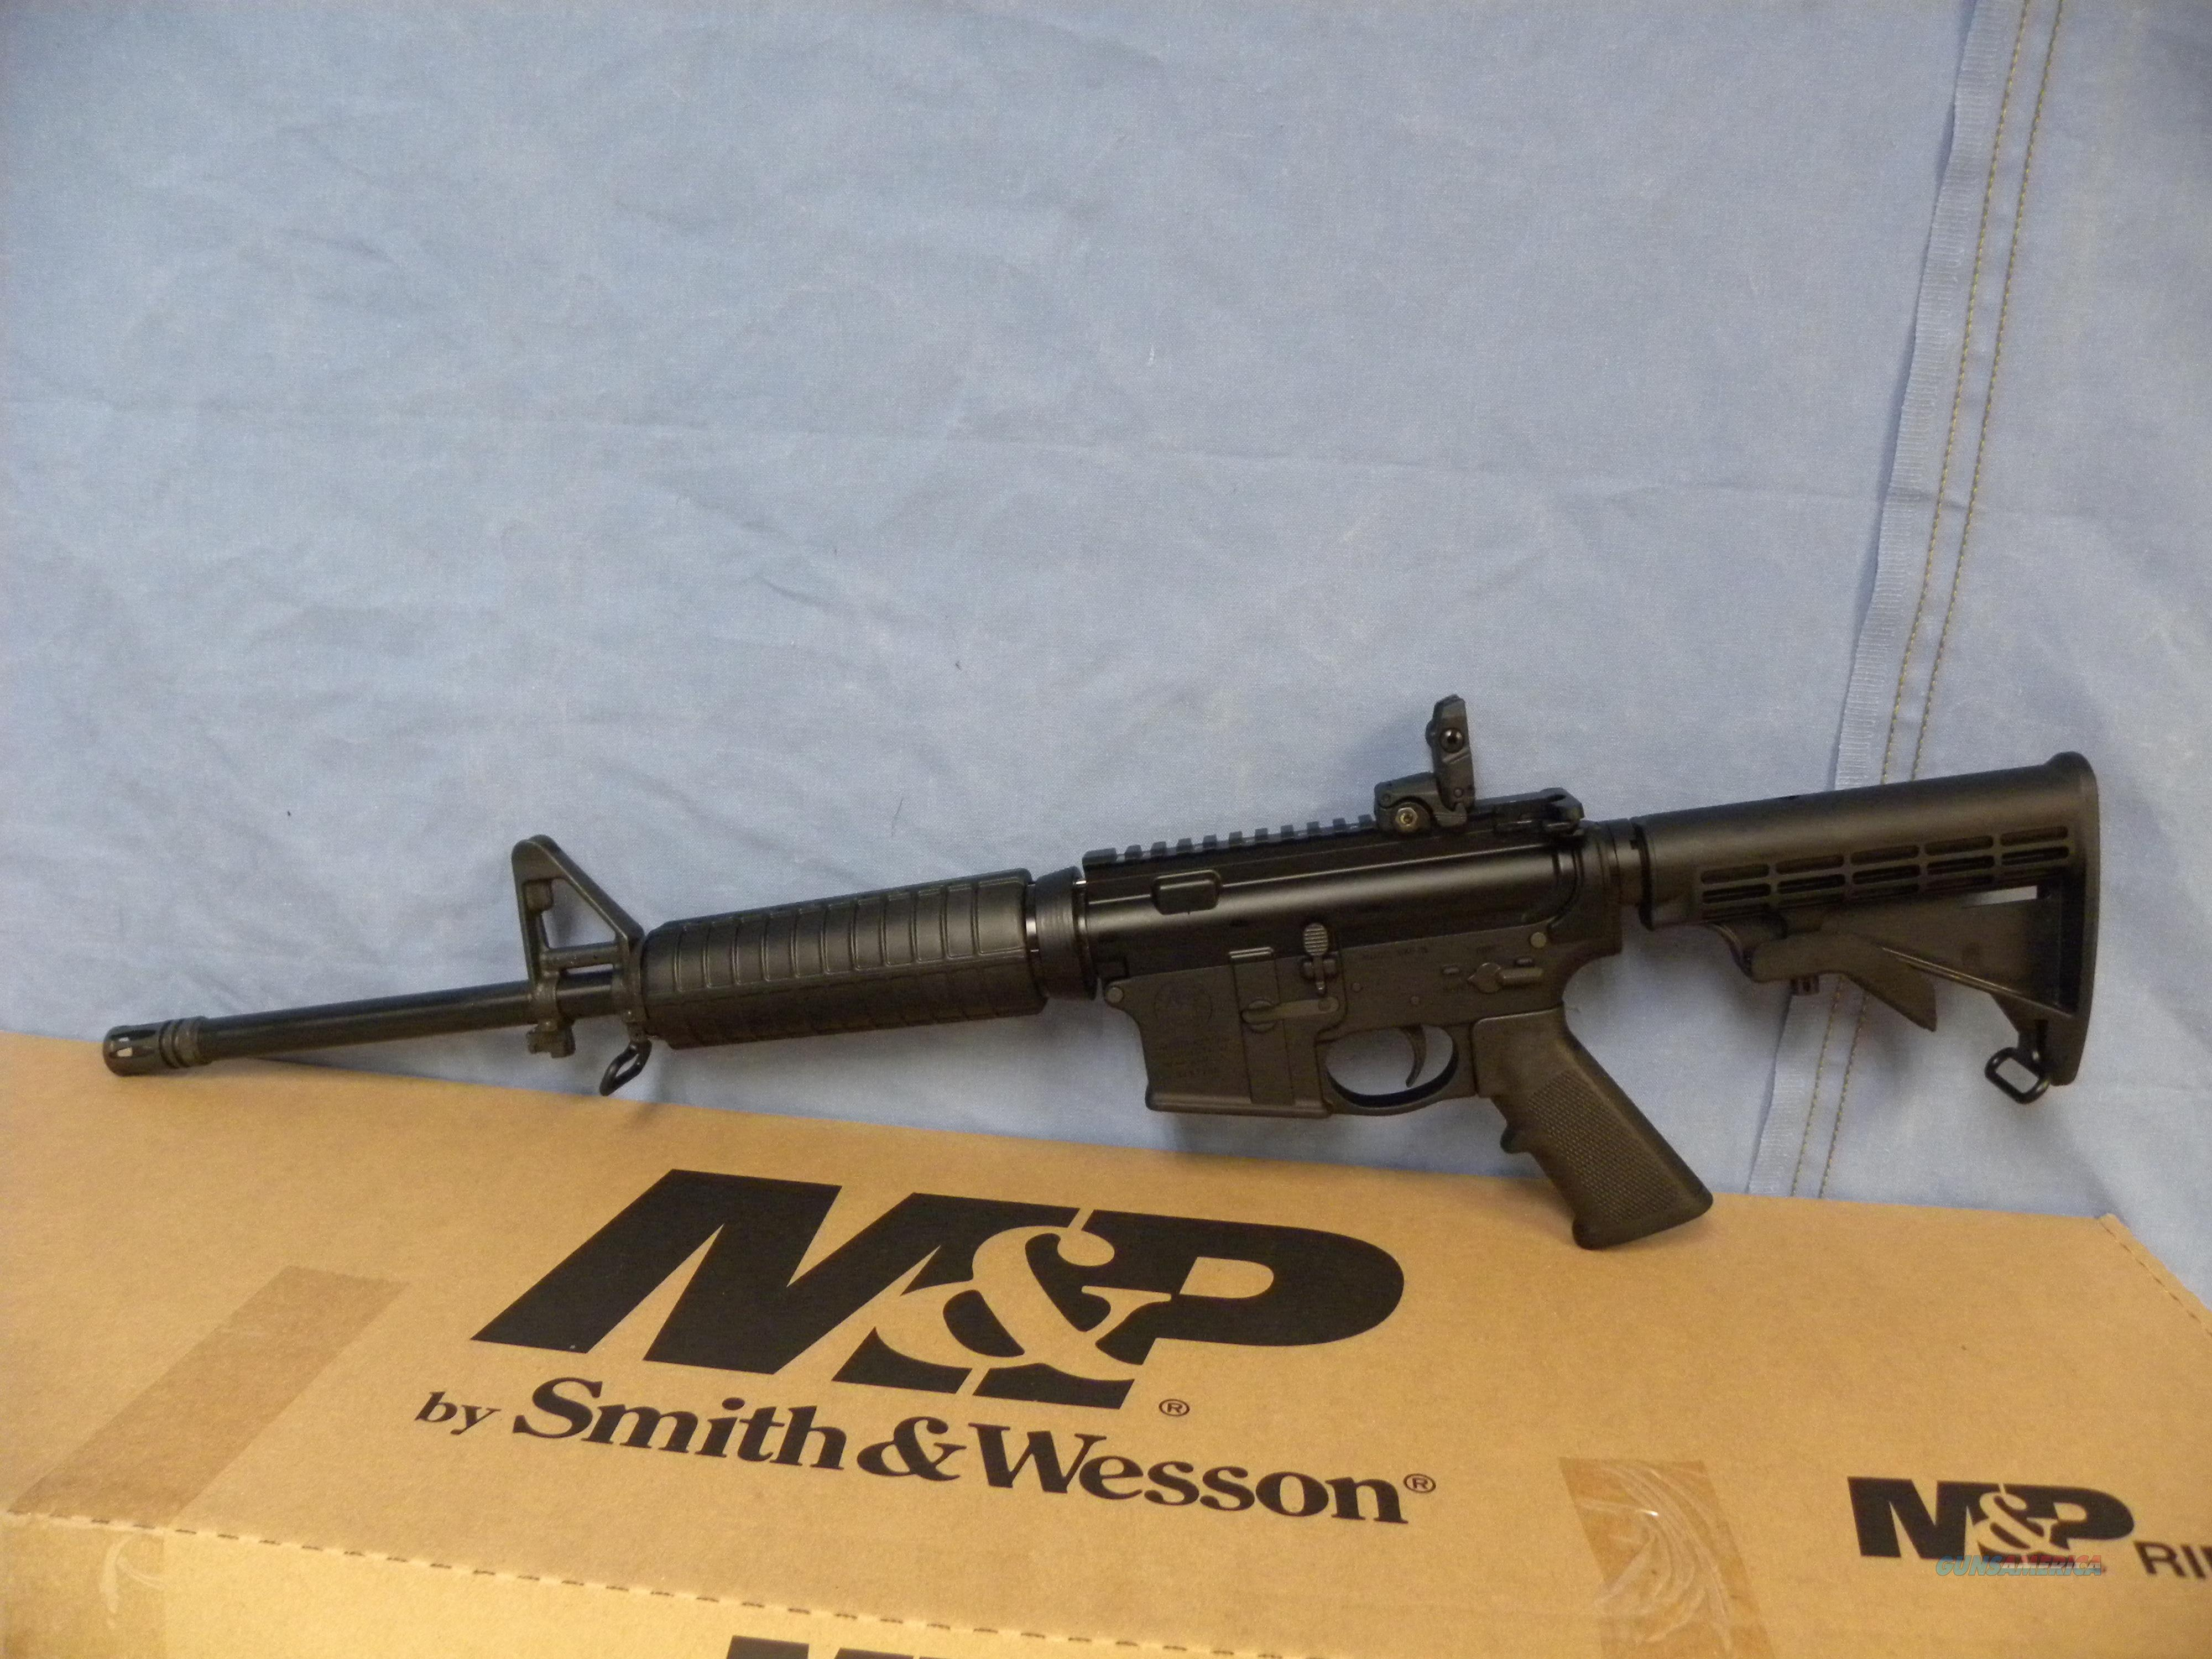 S&W M&P 15 Sport II (10202)  Guns > Rifles > Smith & Wesson Rifles > M&P